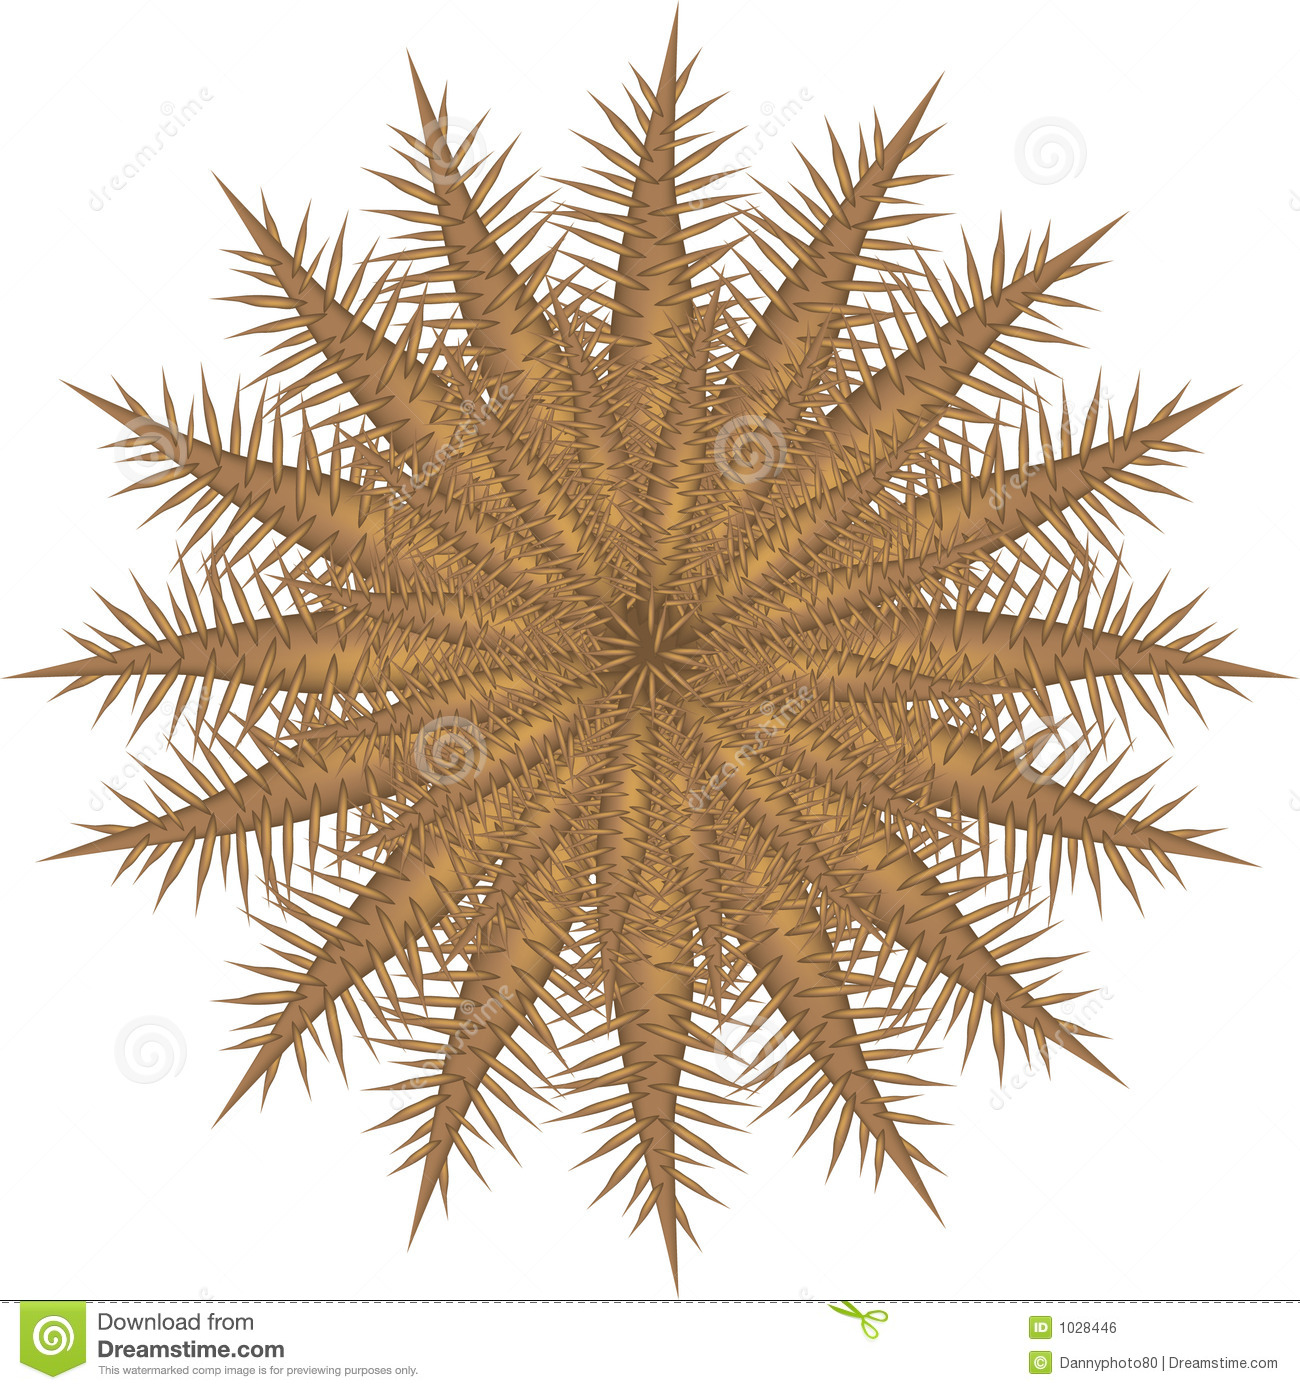 Crown Of Thorns Starfish Royalty Free Stock Image - Image: 1028446